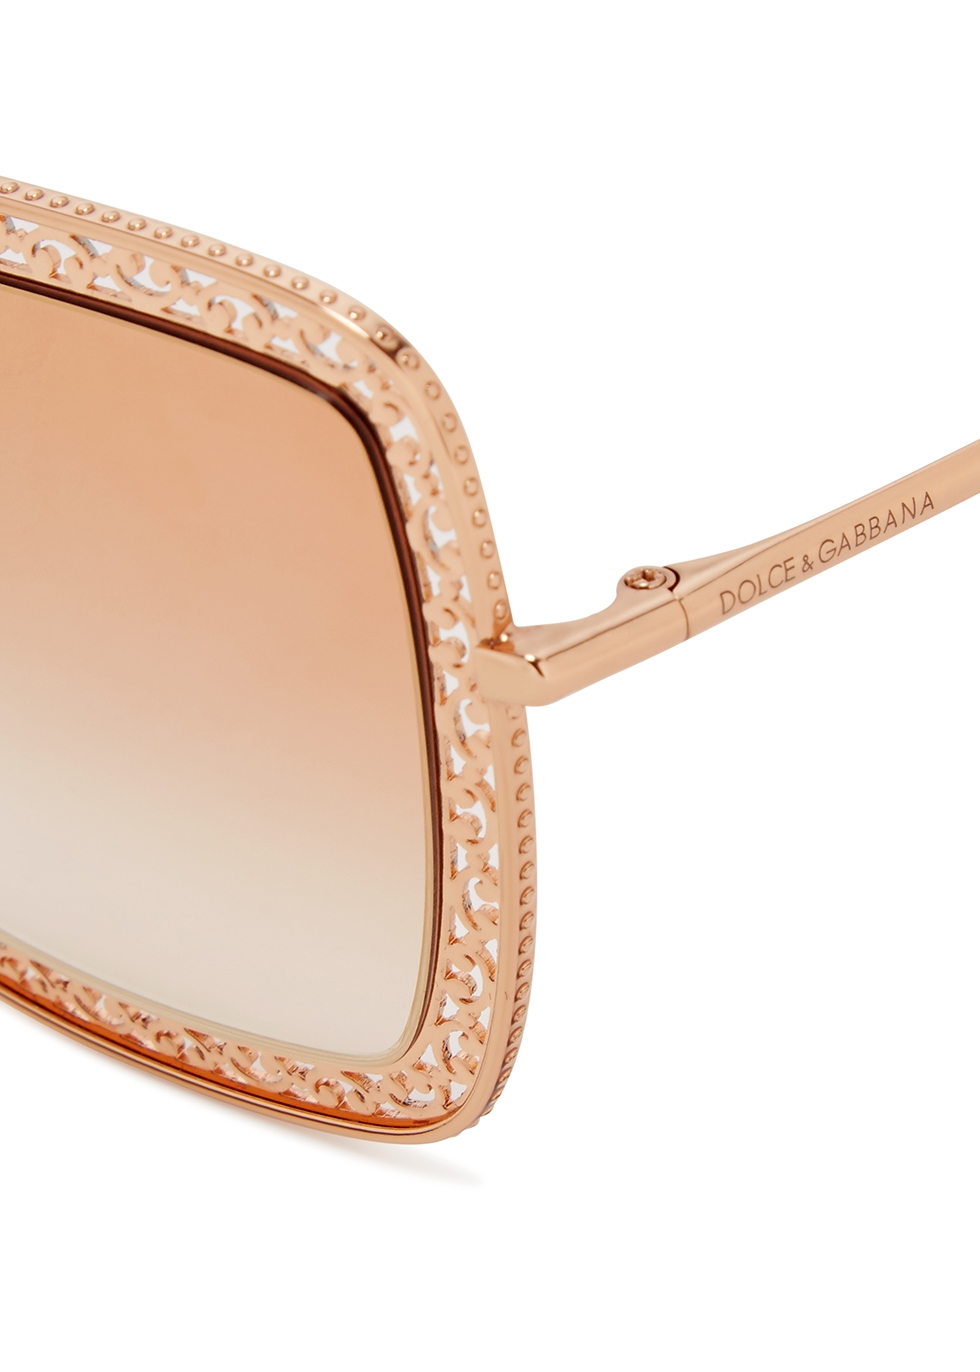 Rose-gold tone oversized sunglasses - Dolce & Gabbana